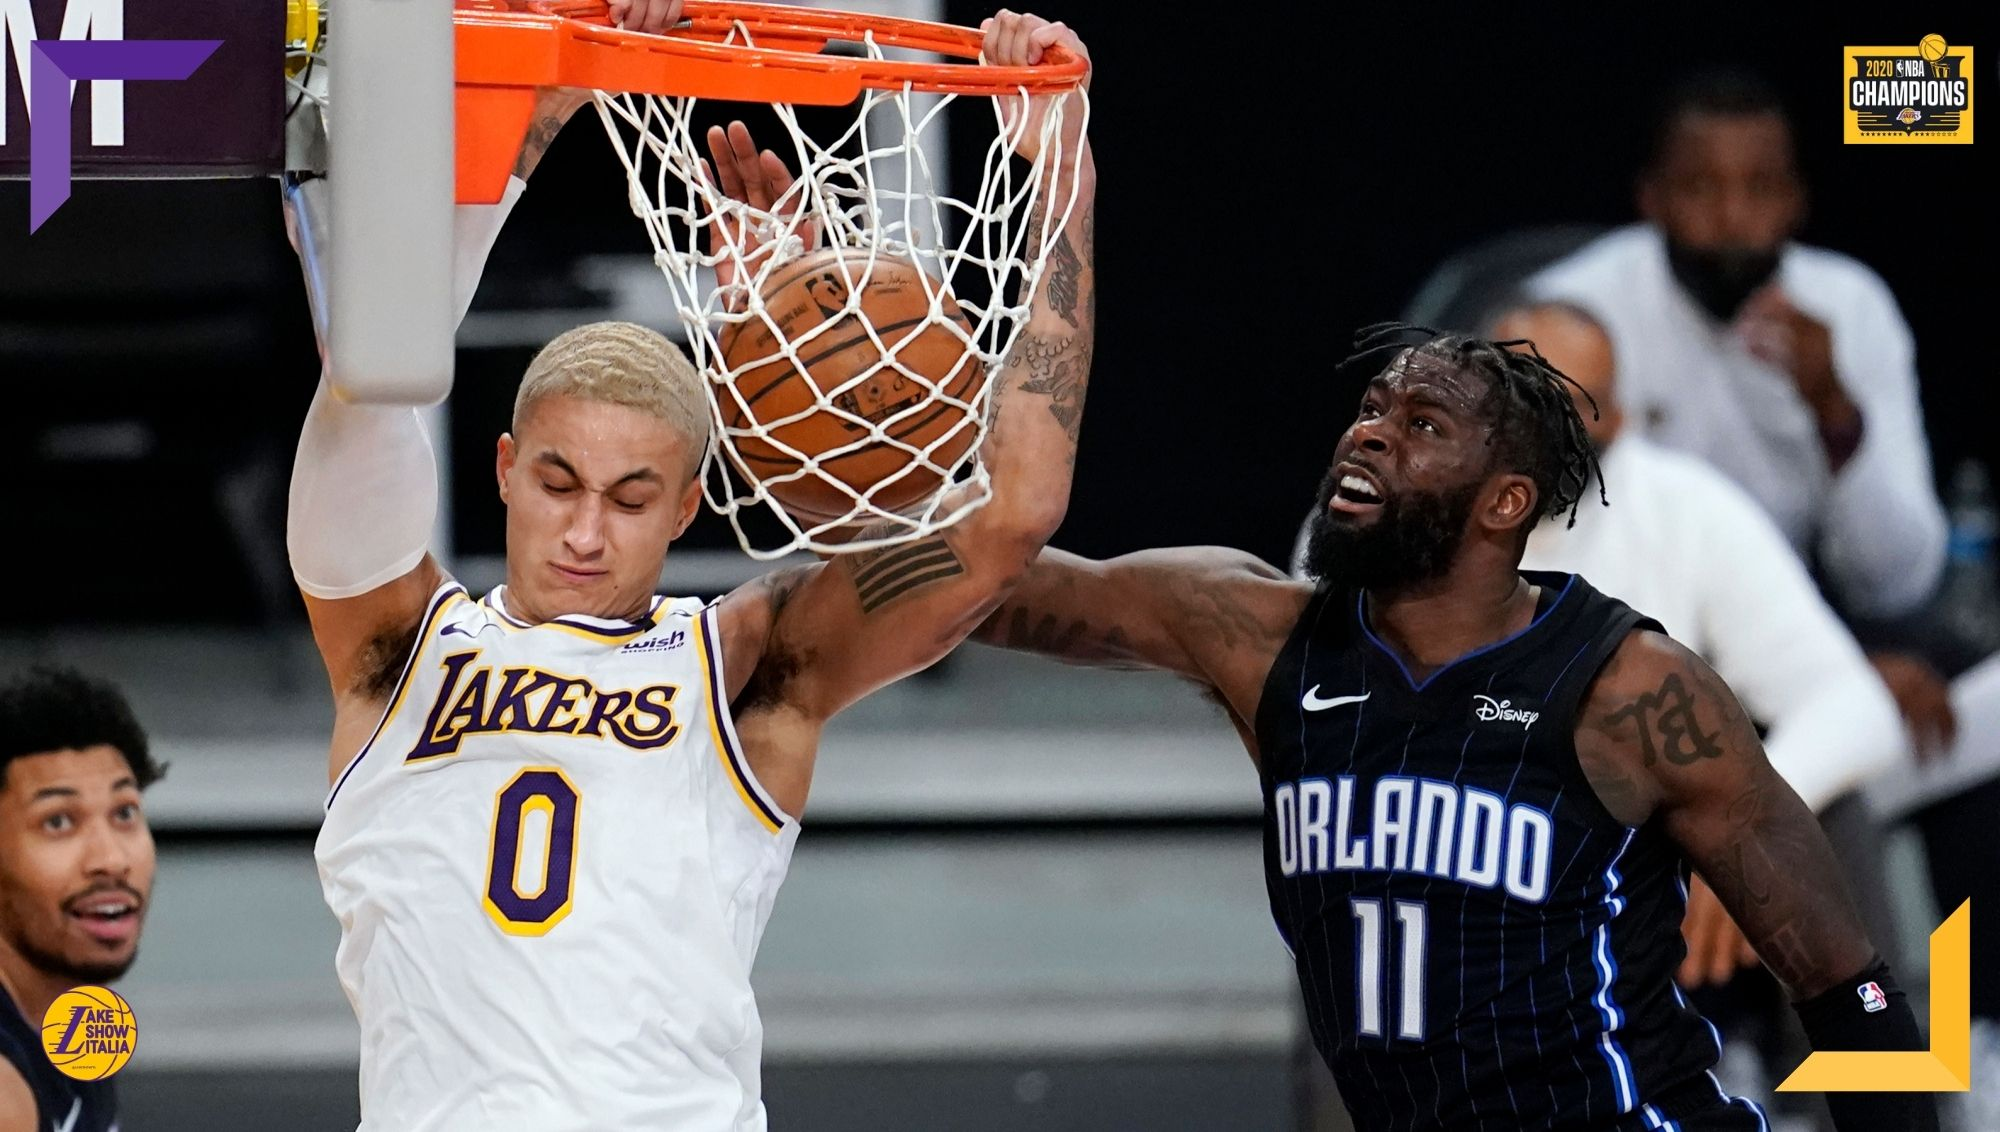 Seconda vittoria per i Los Angeles Lakers, che battono soffrendo gli Orlando Magic. Discreta prova di Schröder, Harrell e Kuzma. Ancora male KCP.